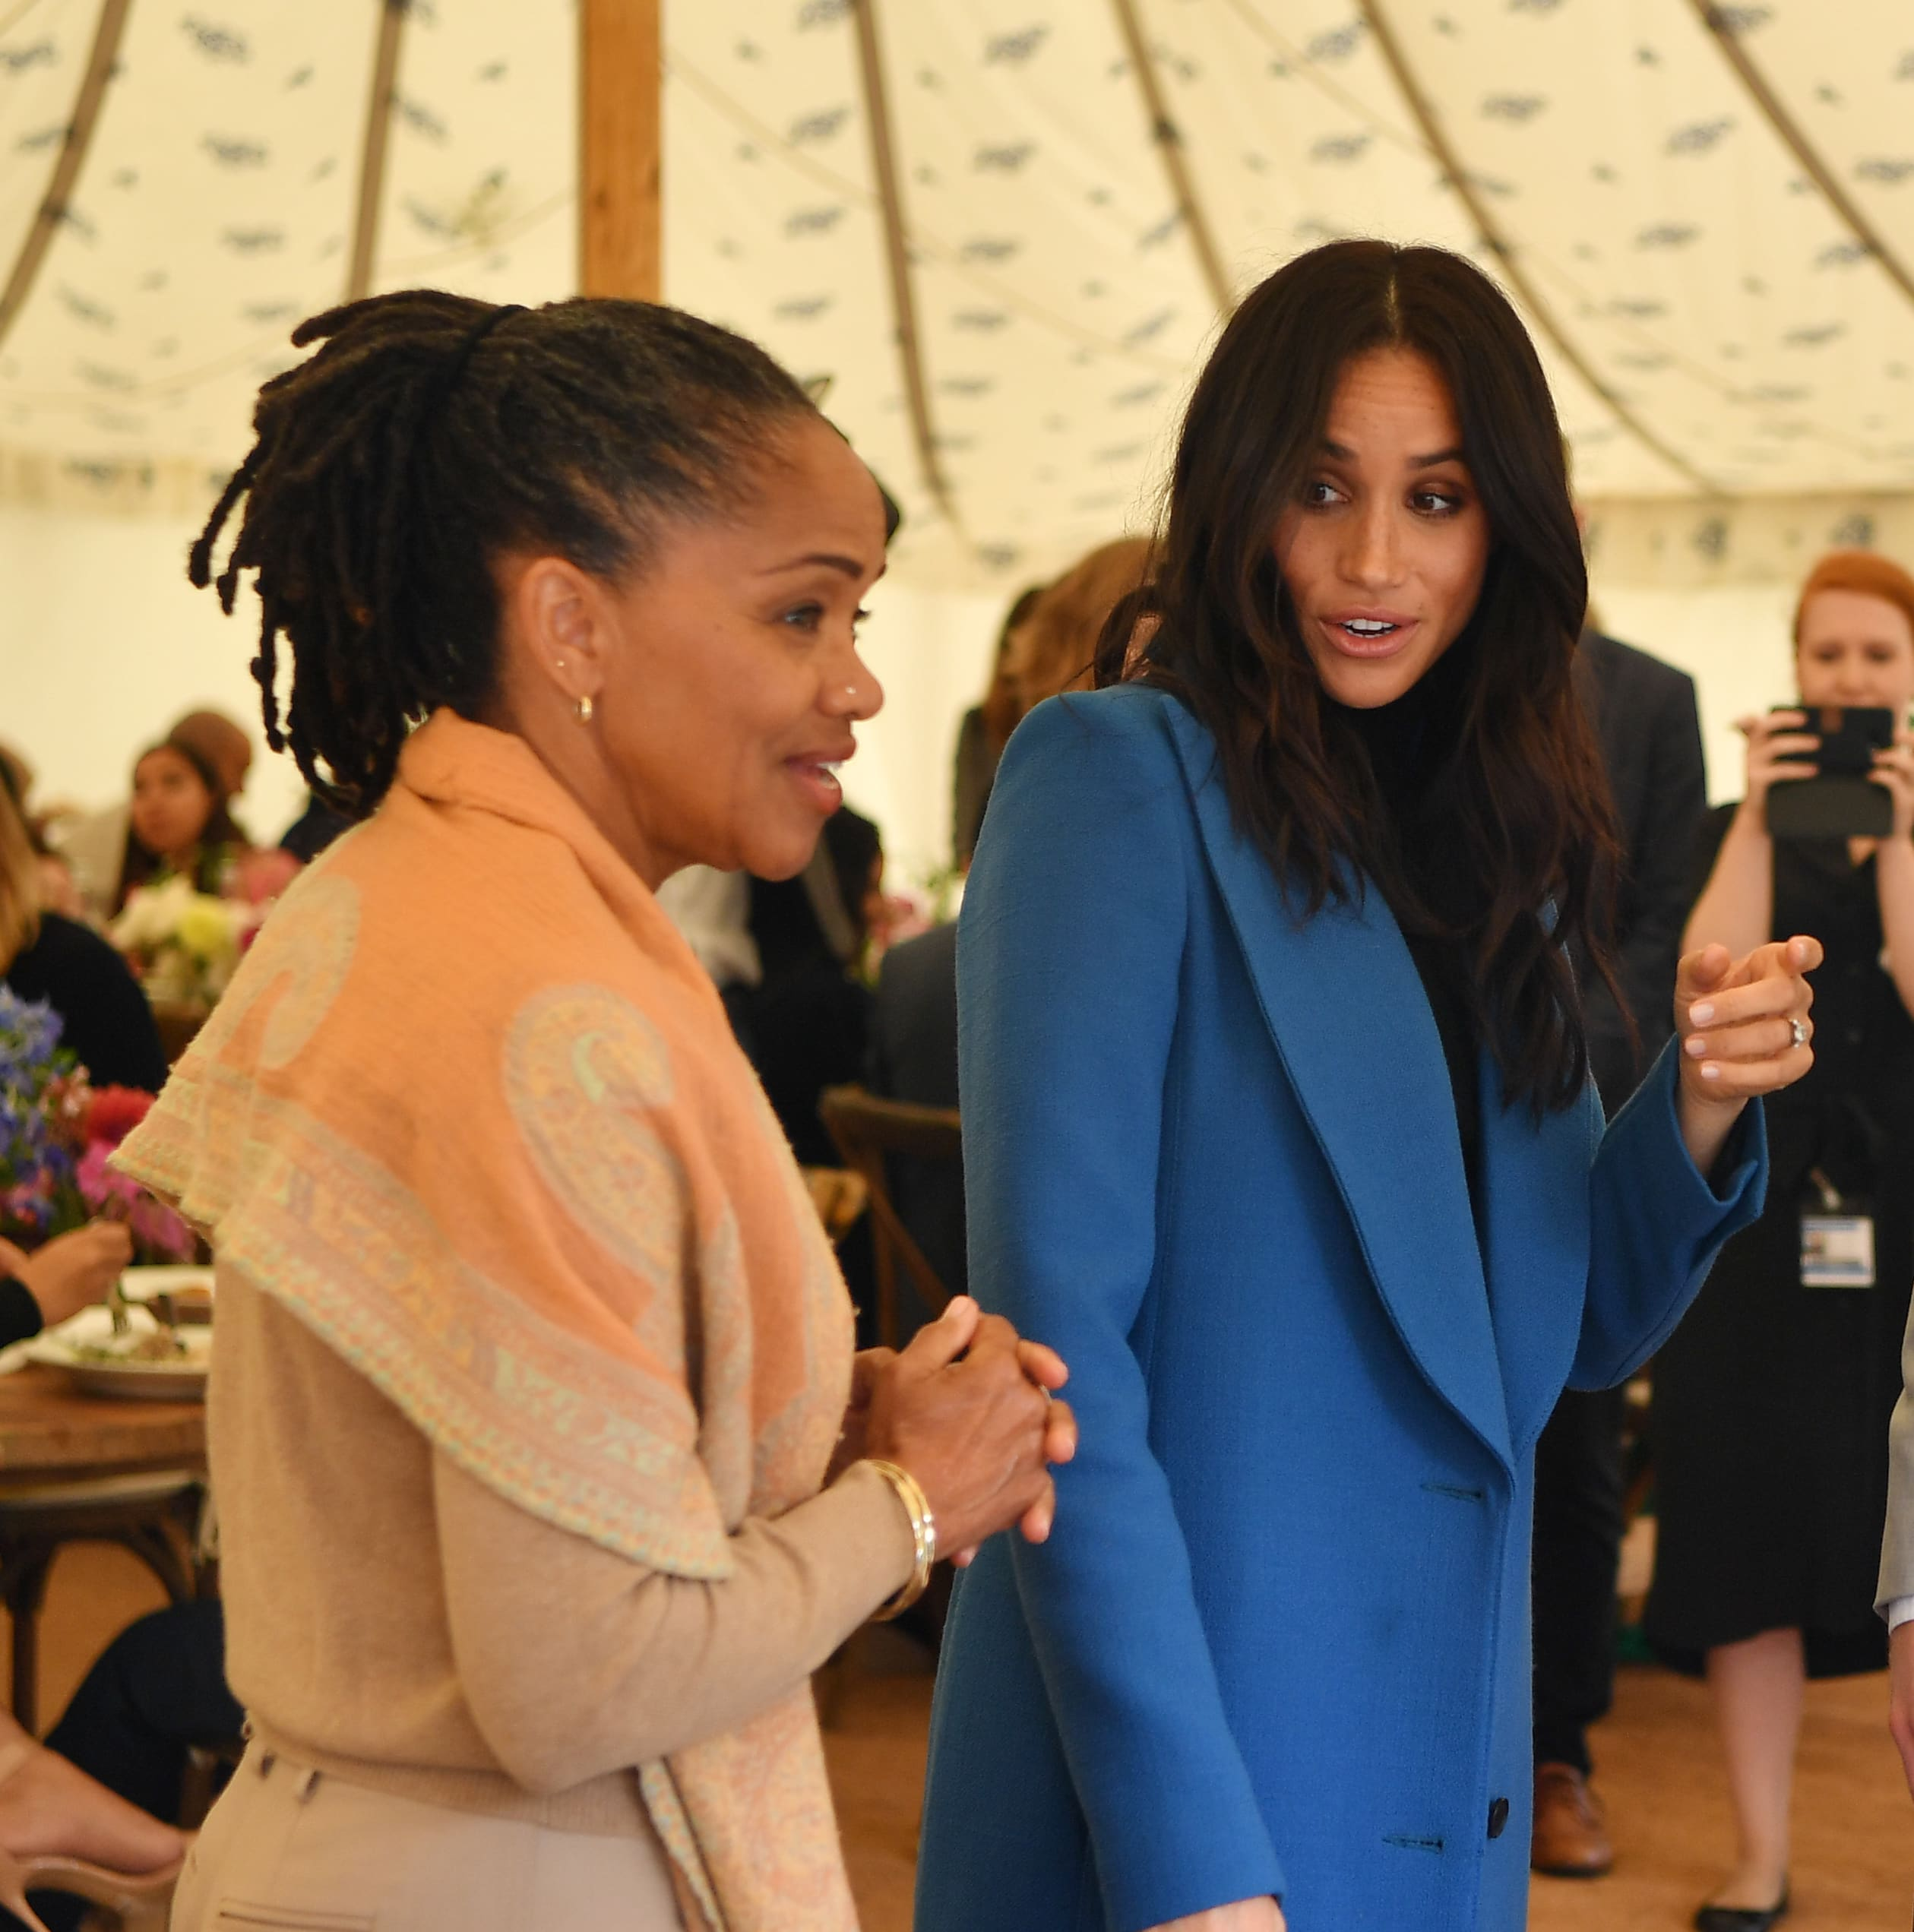 Meghan Markle Mom Help Me Fight The Royals The Hollywood Gossip